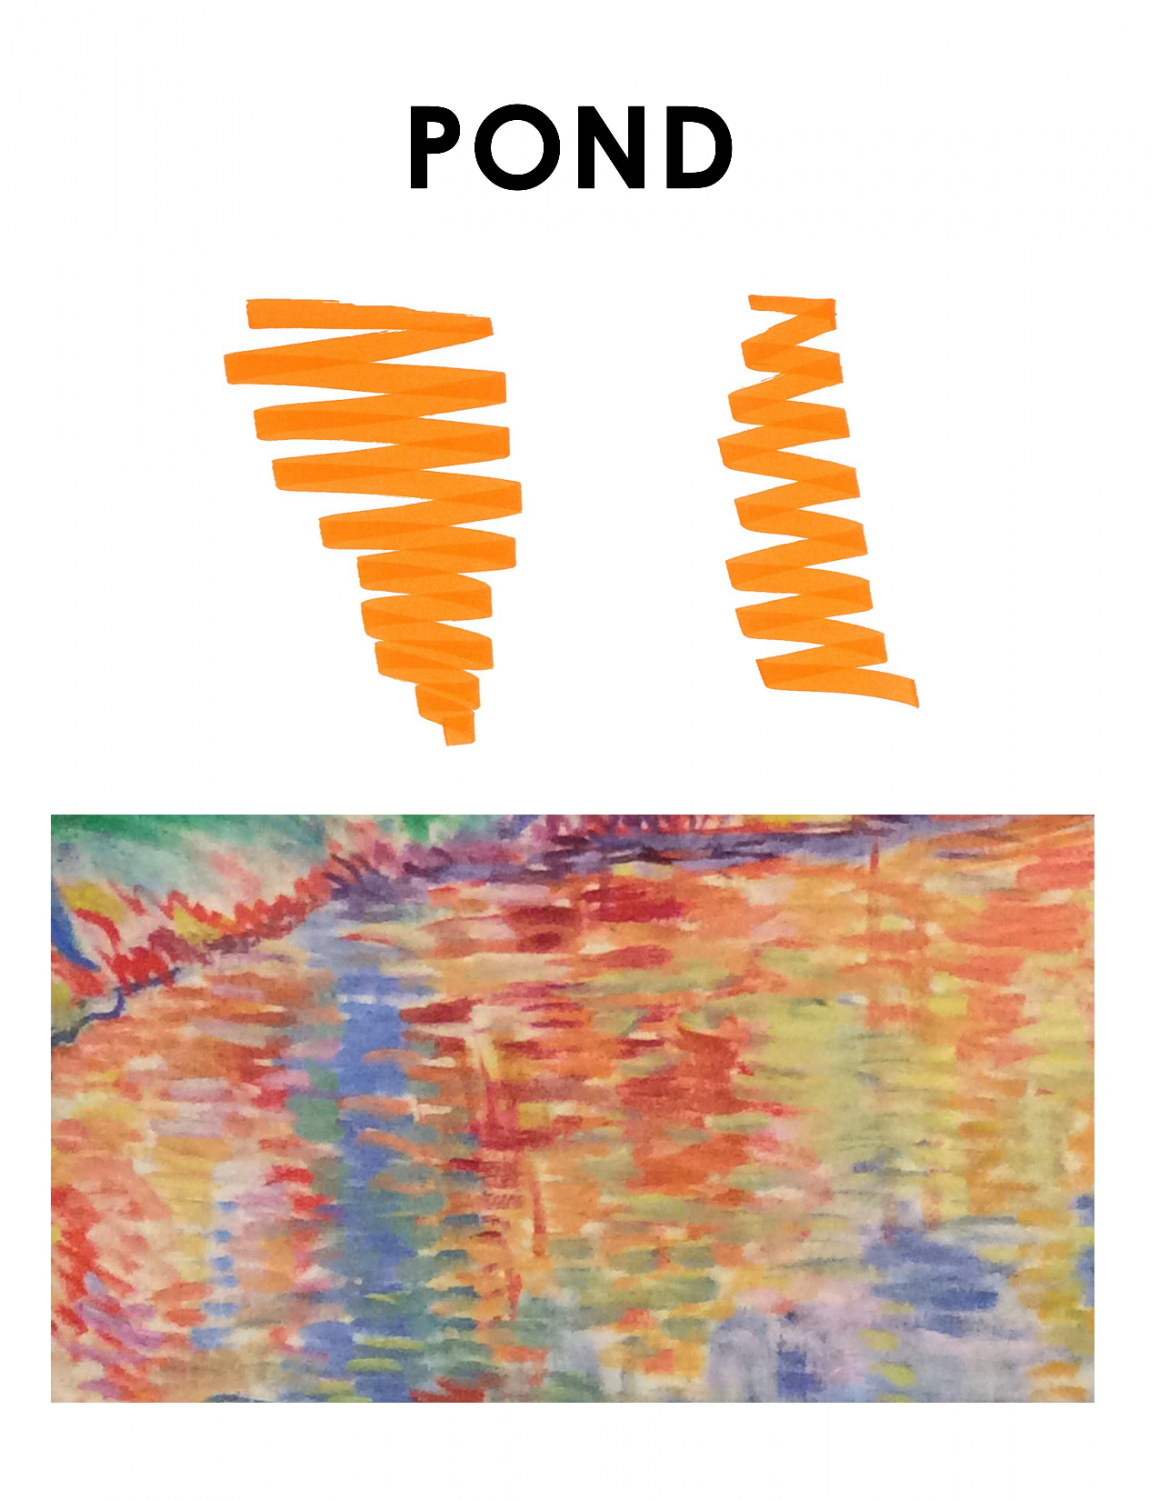 """Brightly colored landscape is on the bottom half of this image. The top says """"Pond"""" and depicts orange horizontal lines drawn back and forth as they move down the page without lifting the marker."""